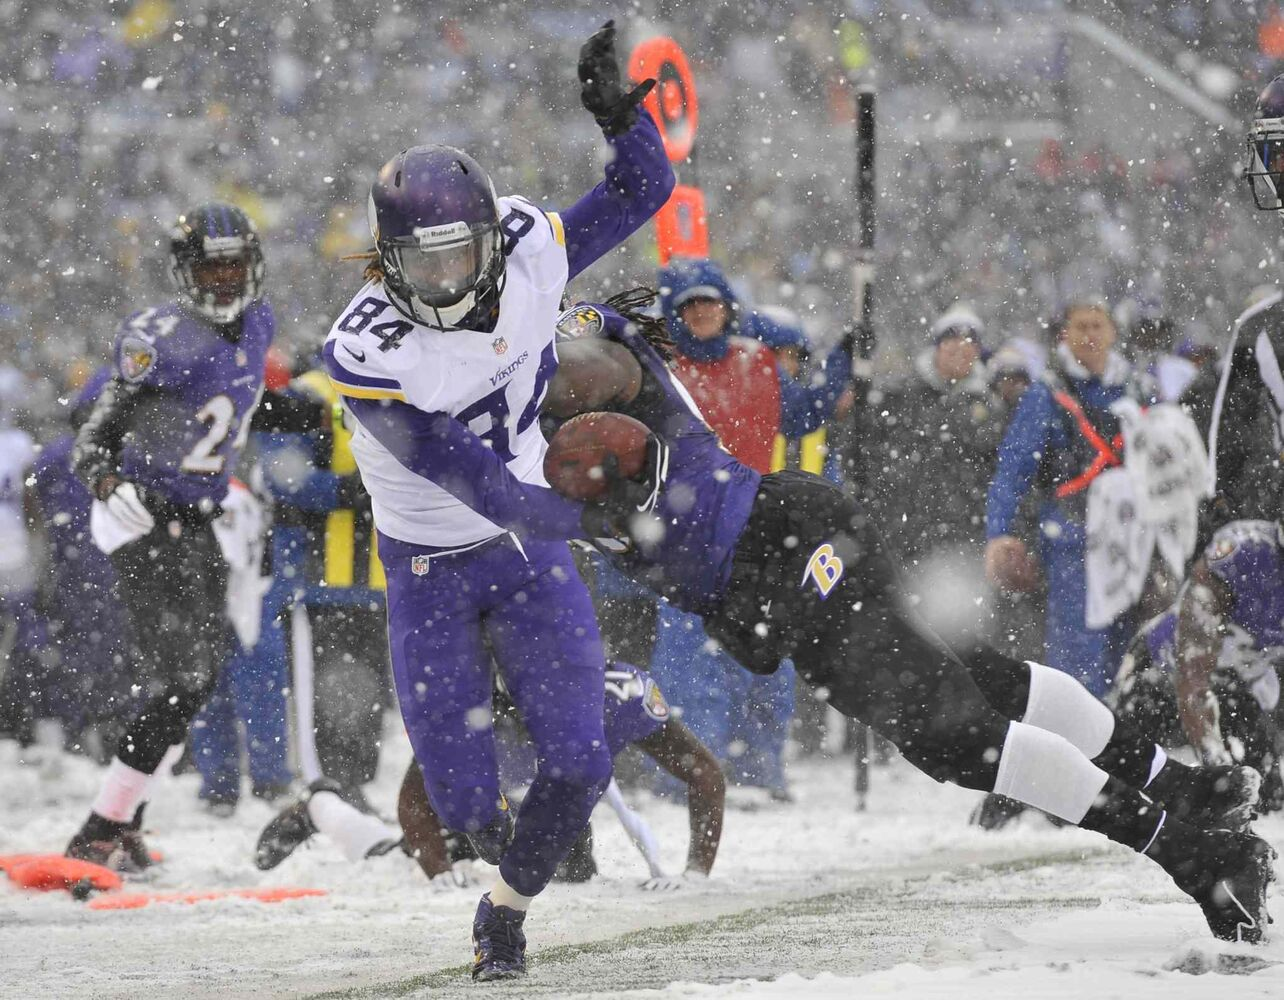 Minnesota Vikings wide receiver Cordarrelle Patterson (84) tries to stay in bounds as he rushes the ball past Baltimore Ravens linebacker Pernell McPhee. (Gail Burton / The Associated Press)